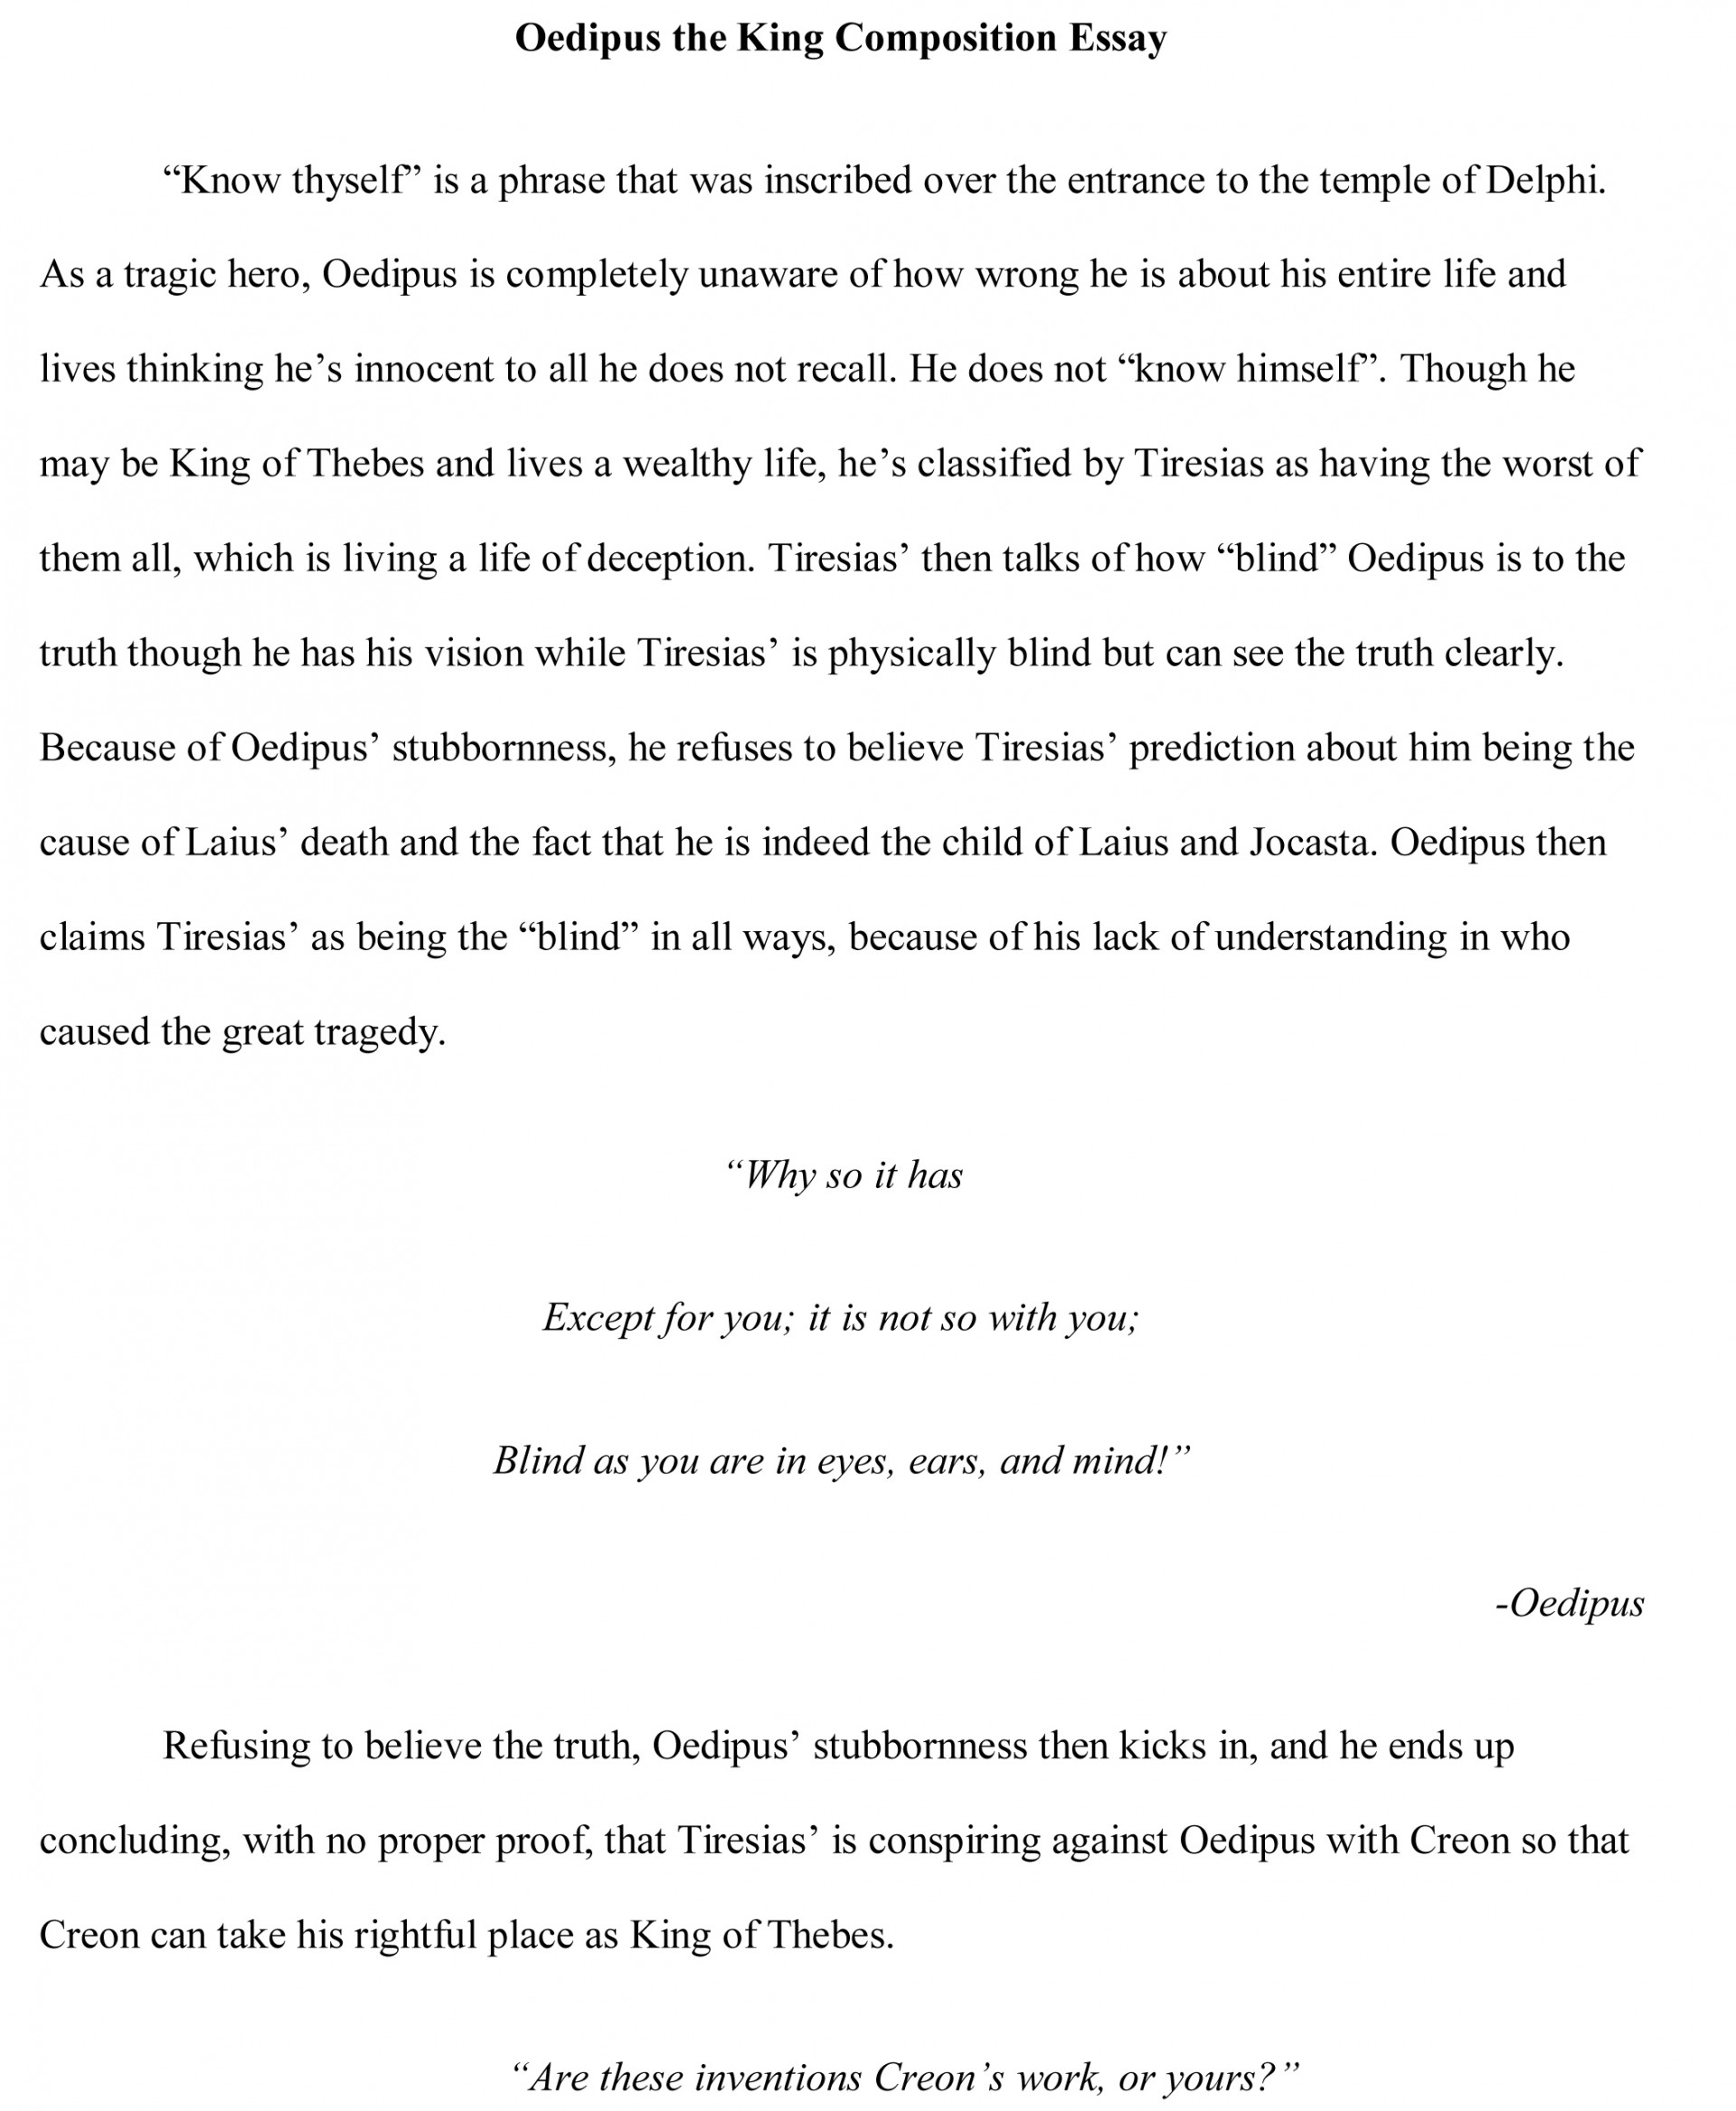 012 Interesting Essay Topics Oedipus Free Sample Amazing Descriptive To Write About For Grade 8 In Urdu Synthesis 1920